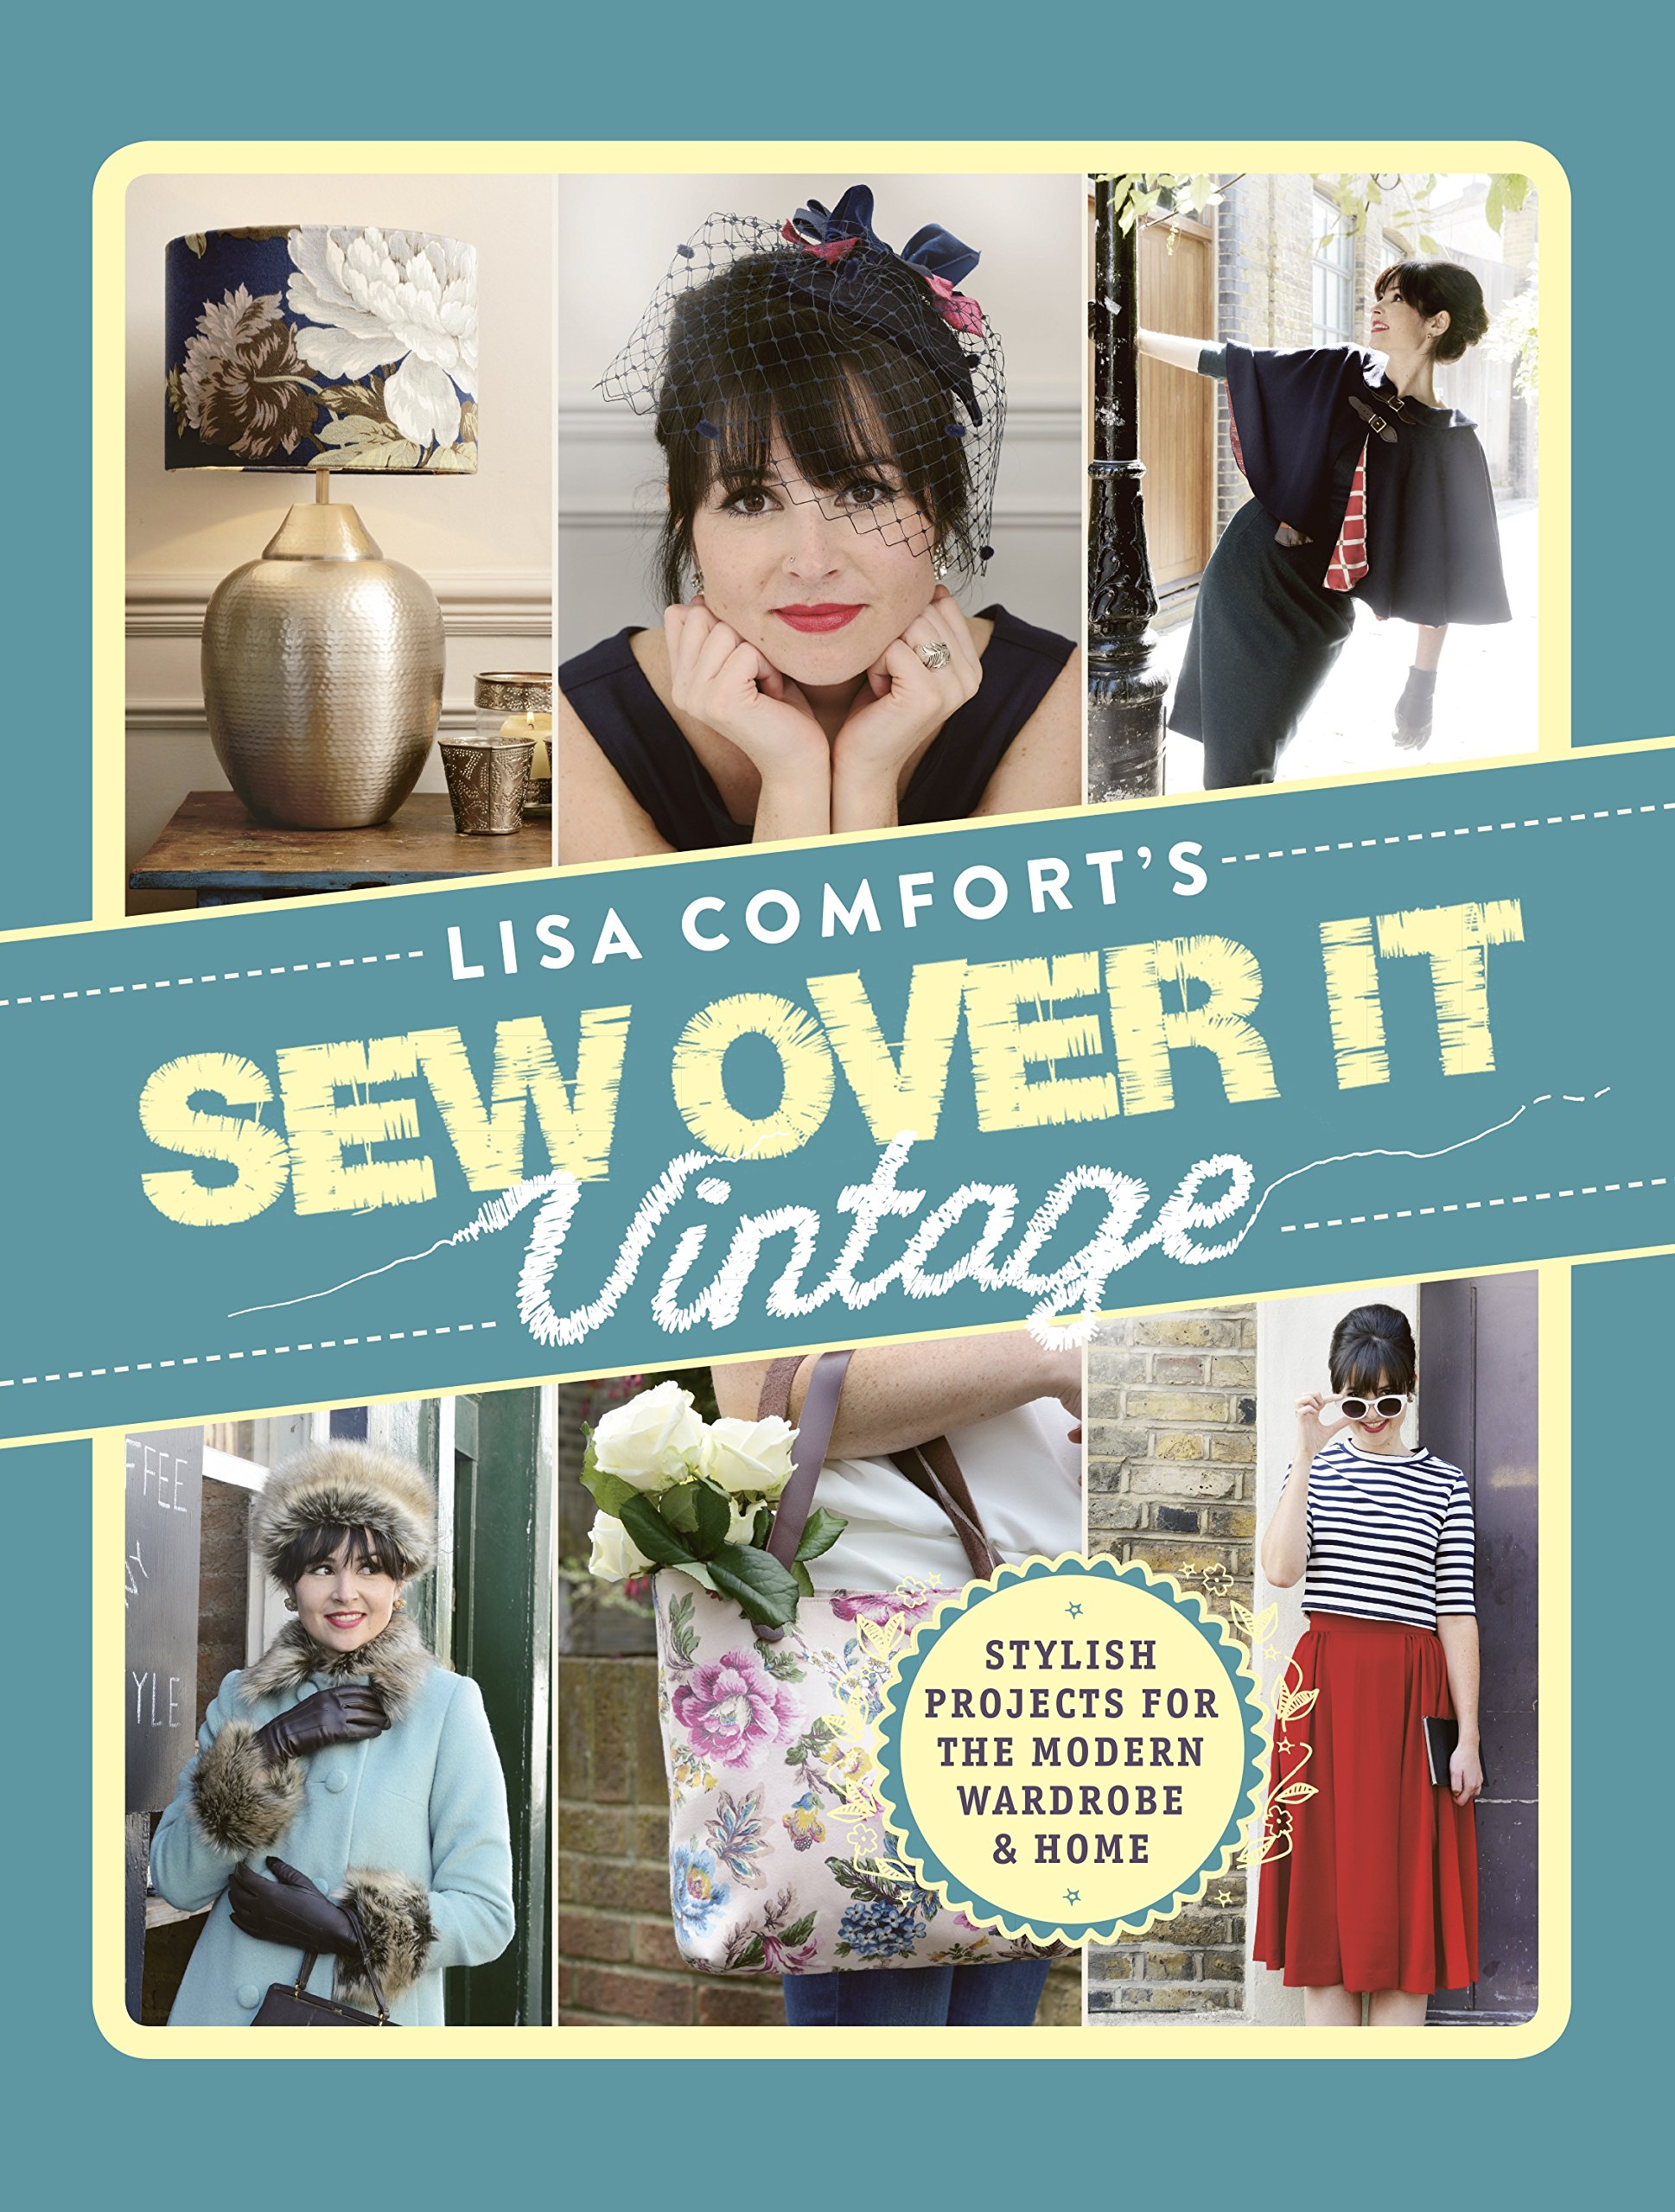 Sew Over It Vintage: Stylish Projects for the Modern Wardrobe & Home